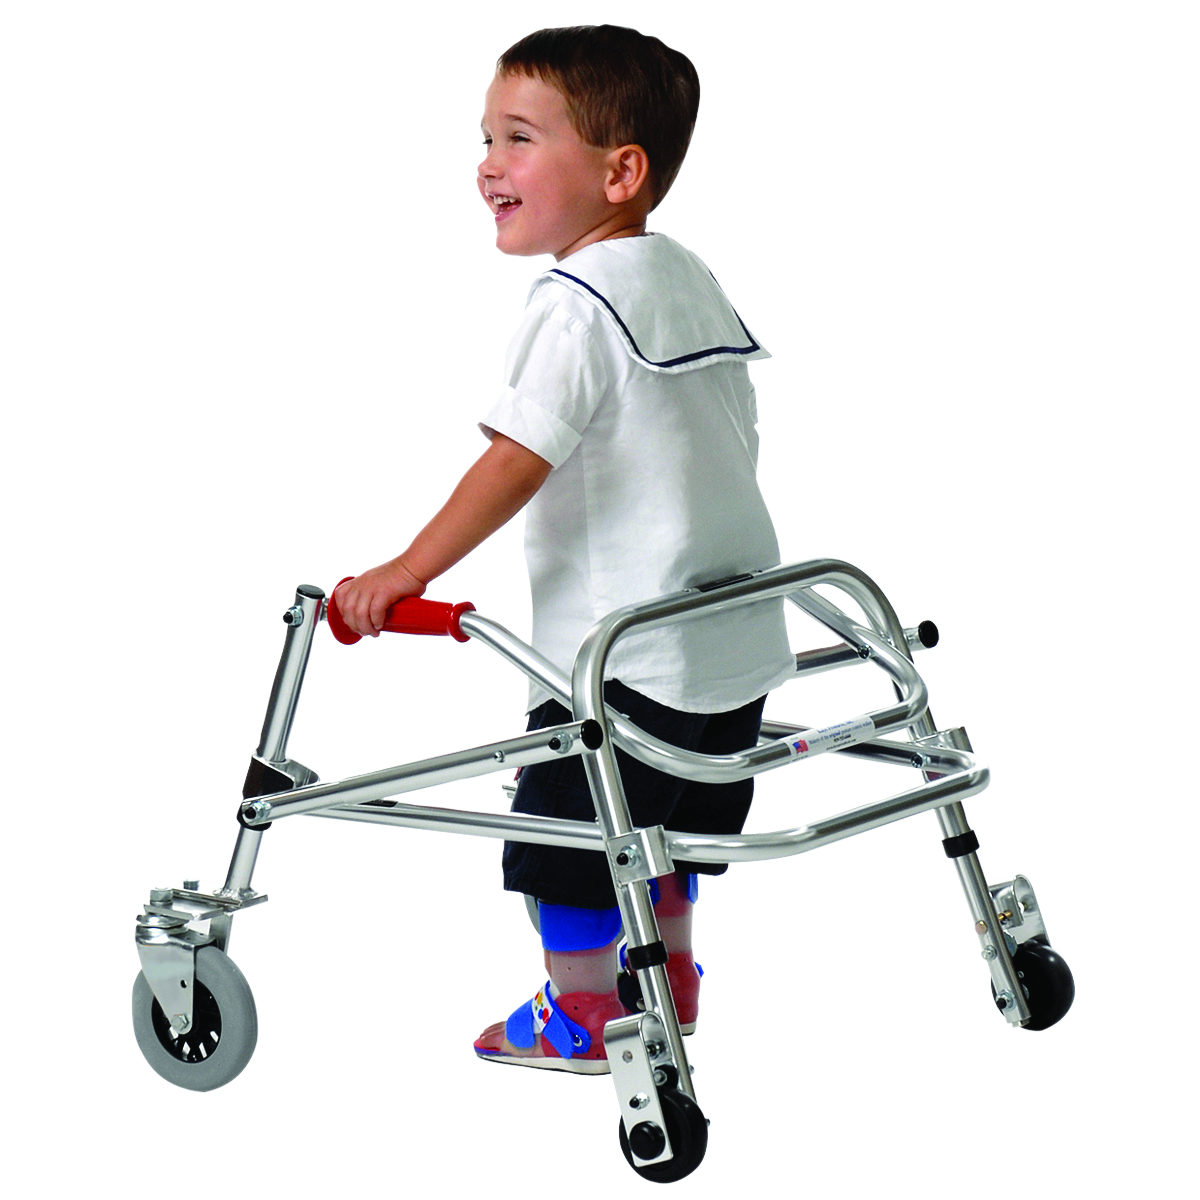 pediatric-mobility-equipment.jpg